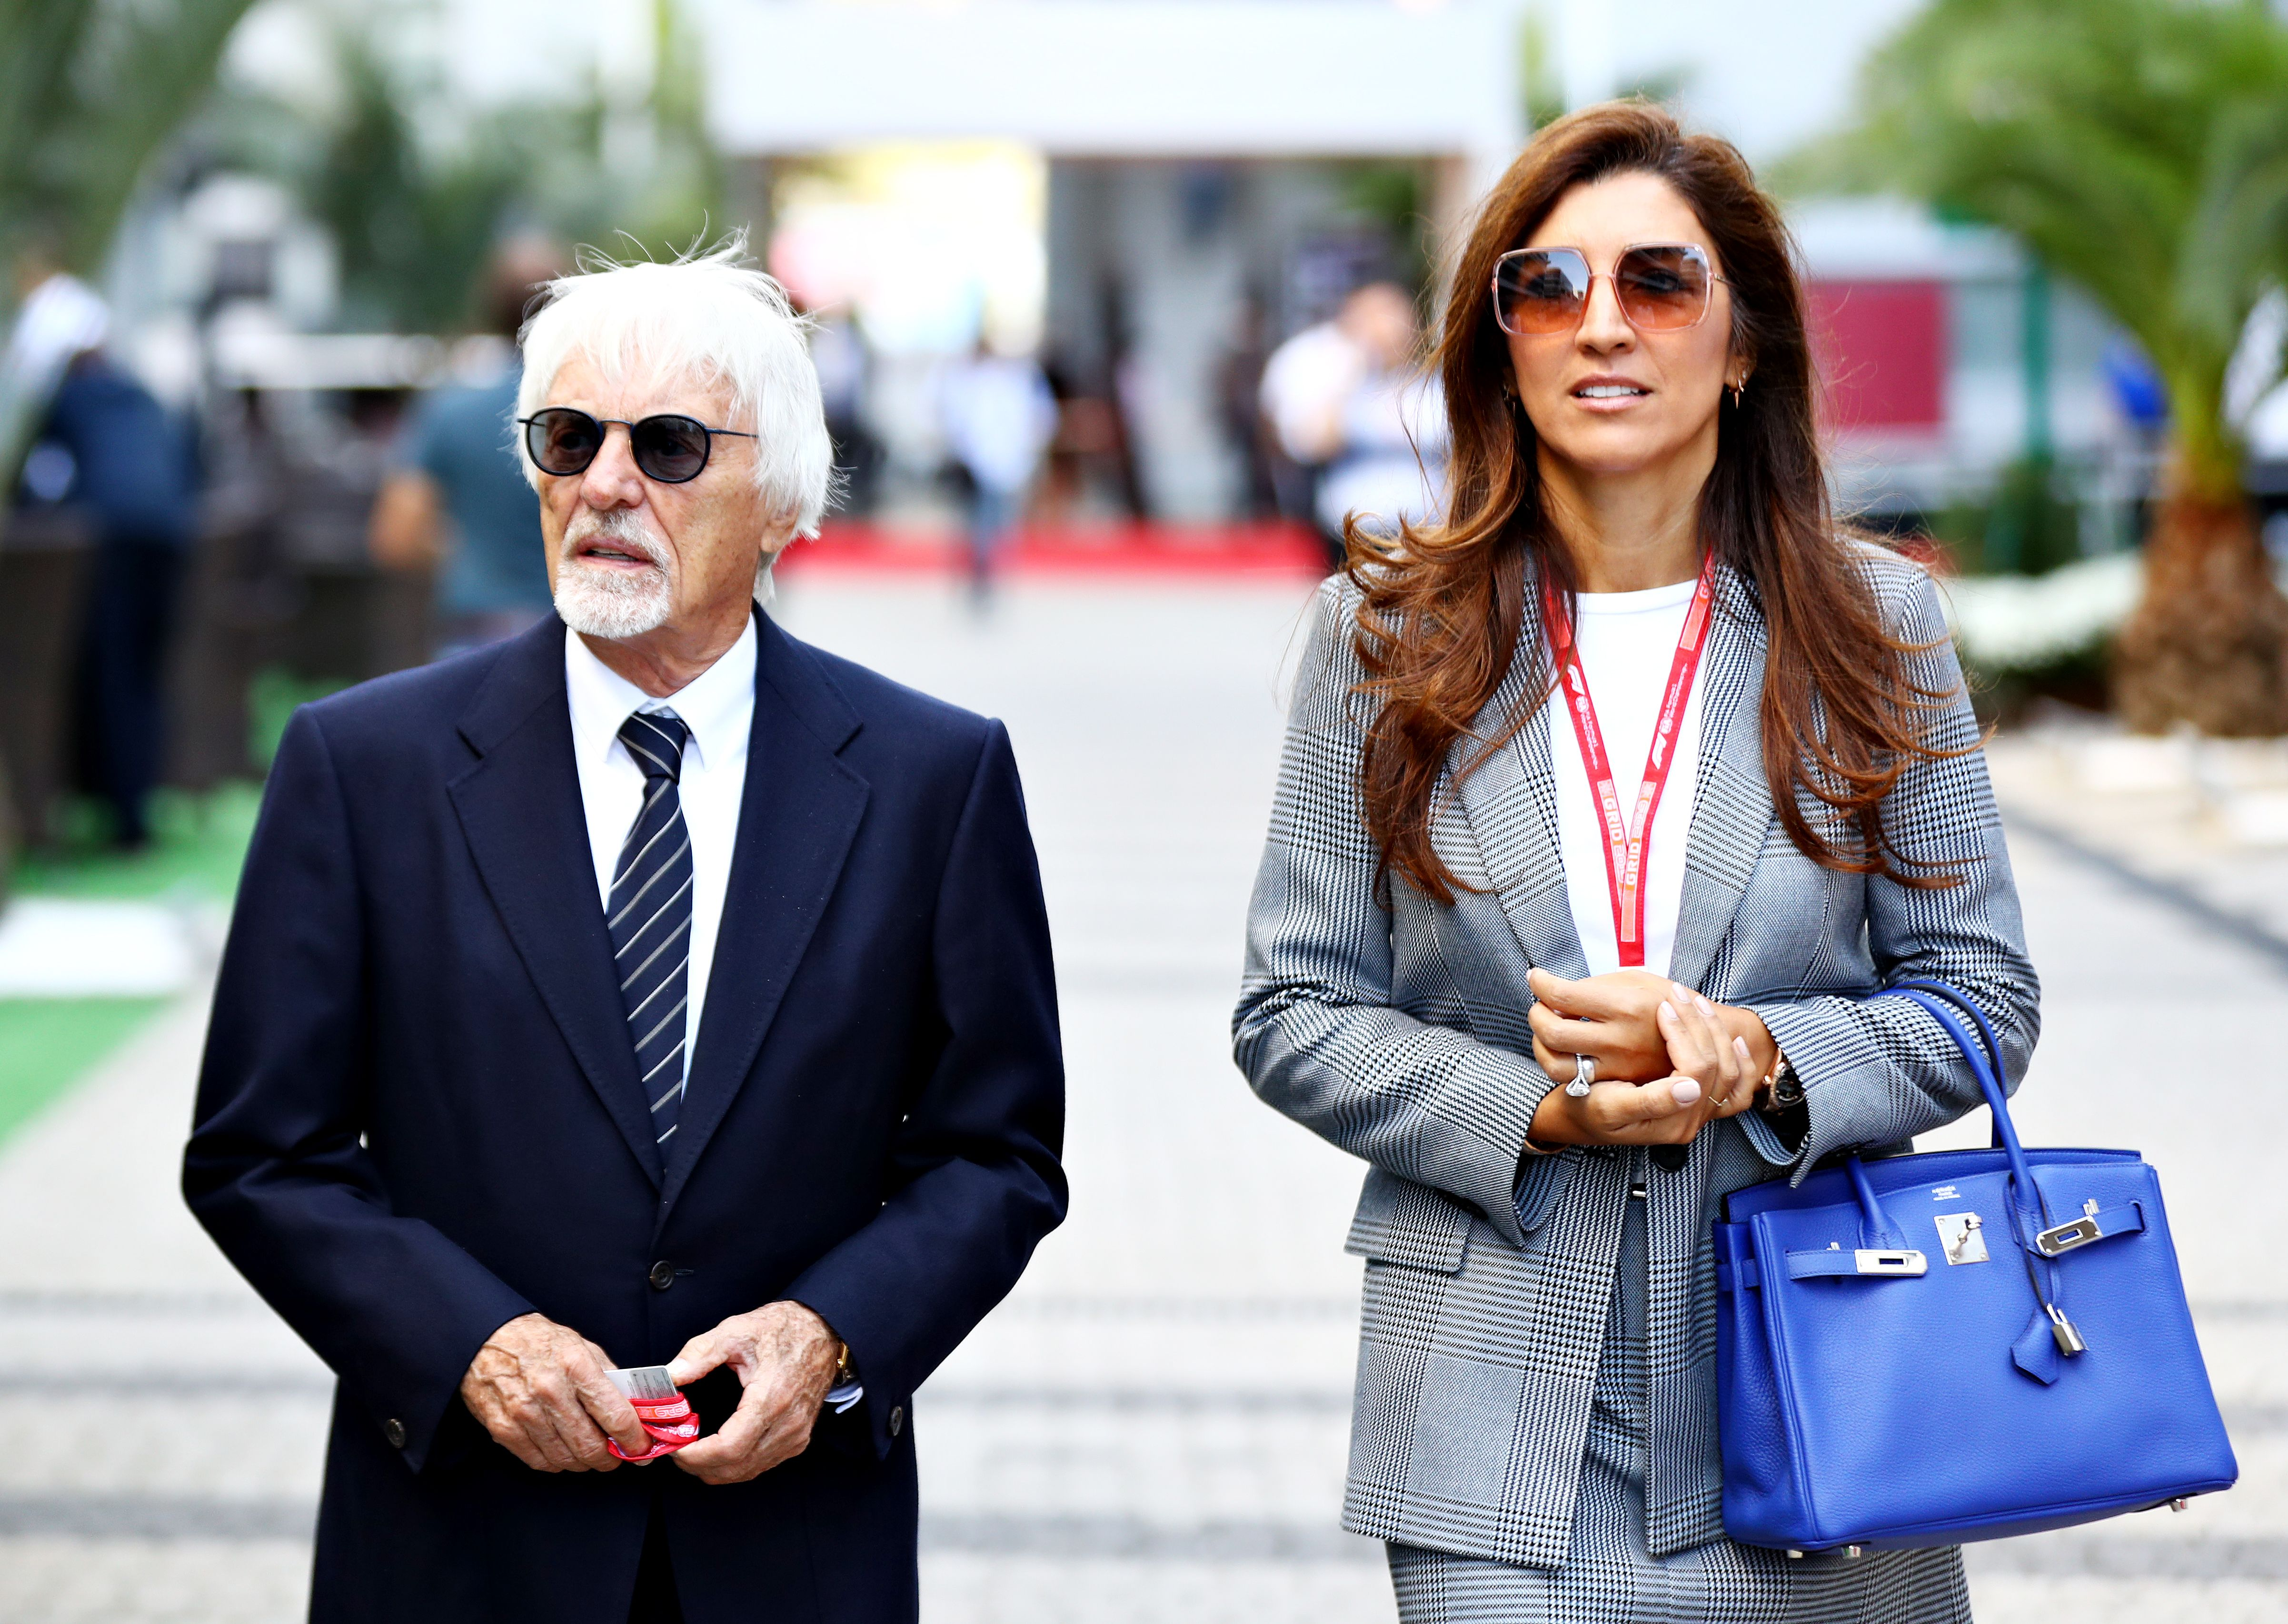 Bernie Ecclestone, Chairman Emeritus of the Formula One Group, and his wife Fabiana walk in the Paddock before the F1 Grand Prix of Russia at Sochi Autodrom on September 29, 2019 | Photo: Getty Images